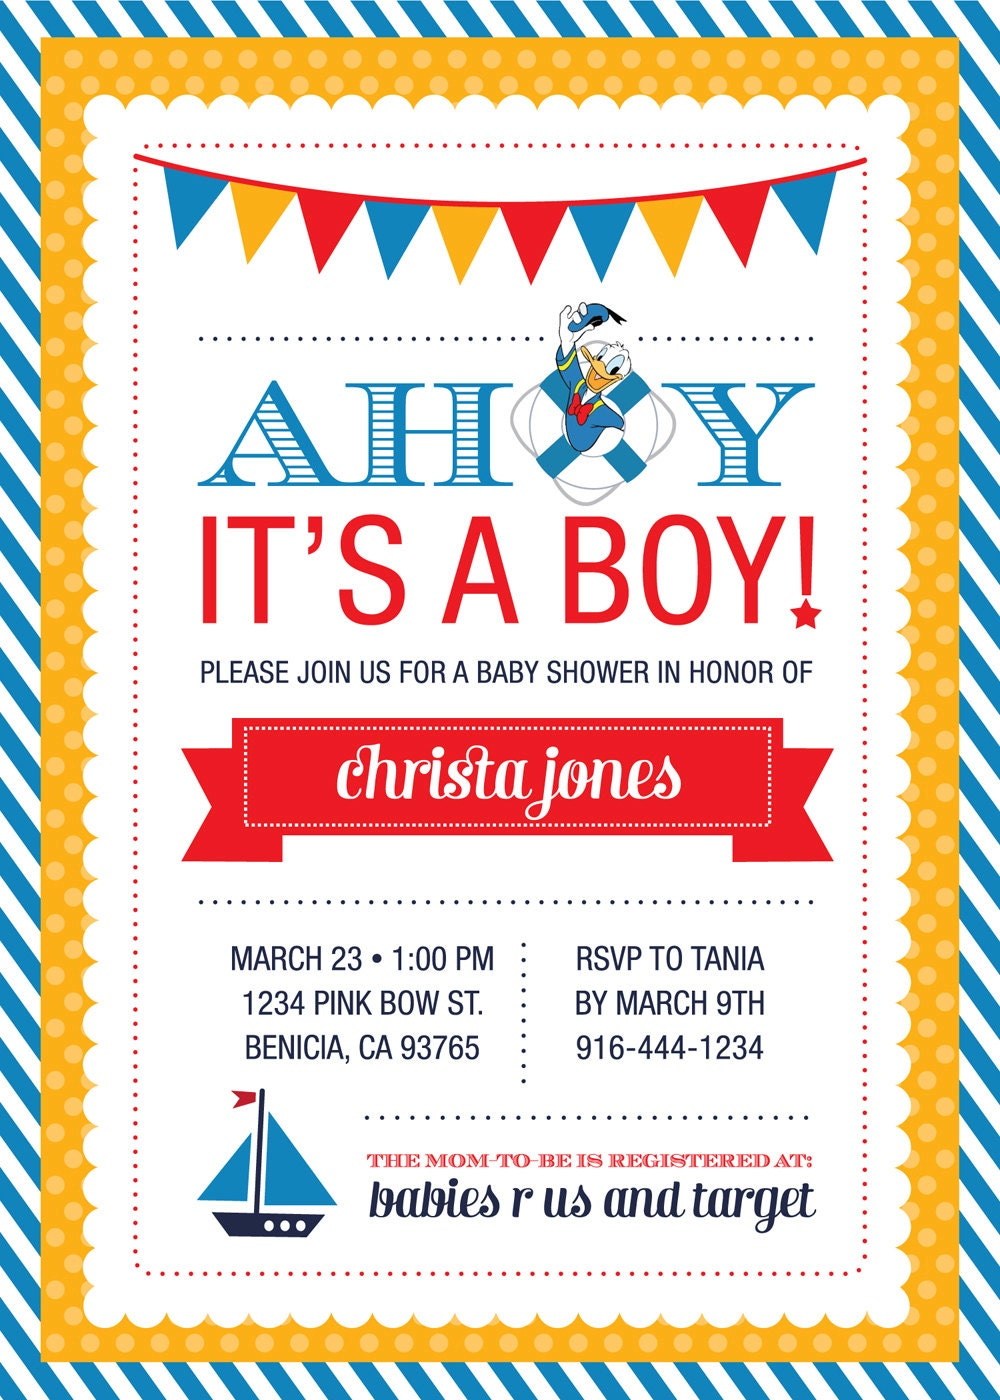 Fine work baby shower invite email collection invitations and modern work baby shower invite email festooning invitations and filmwisefo